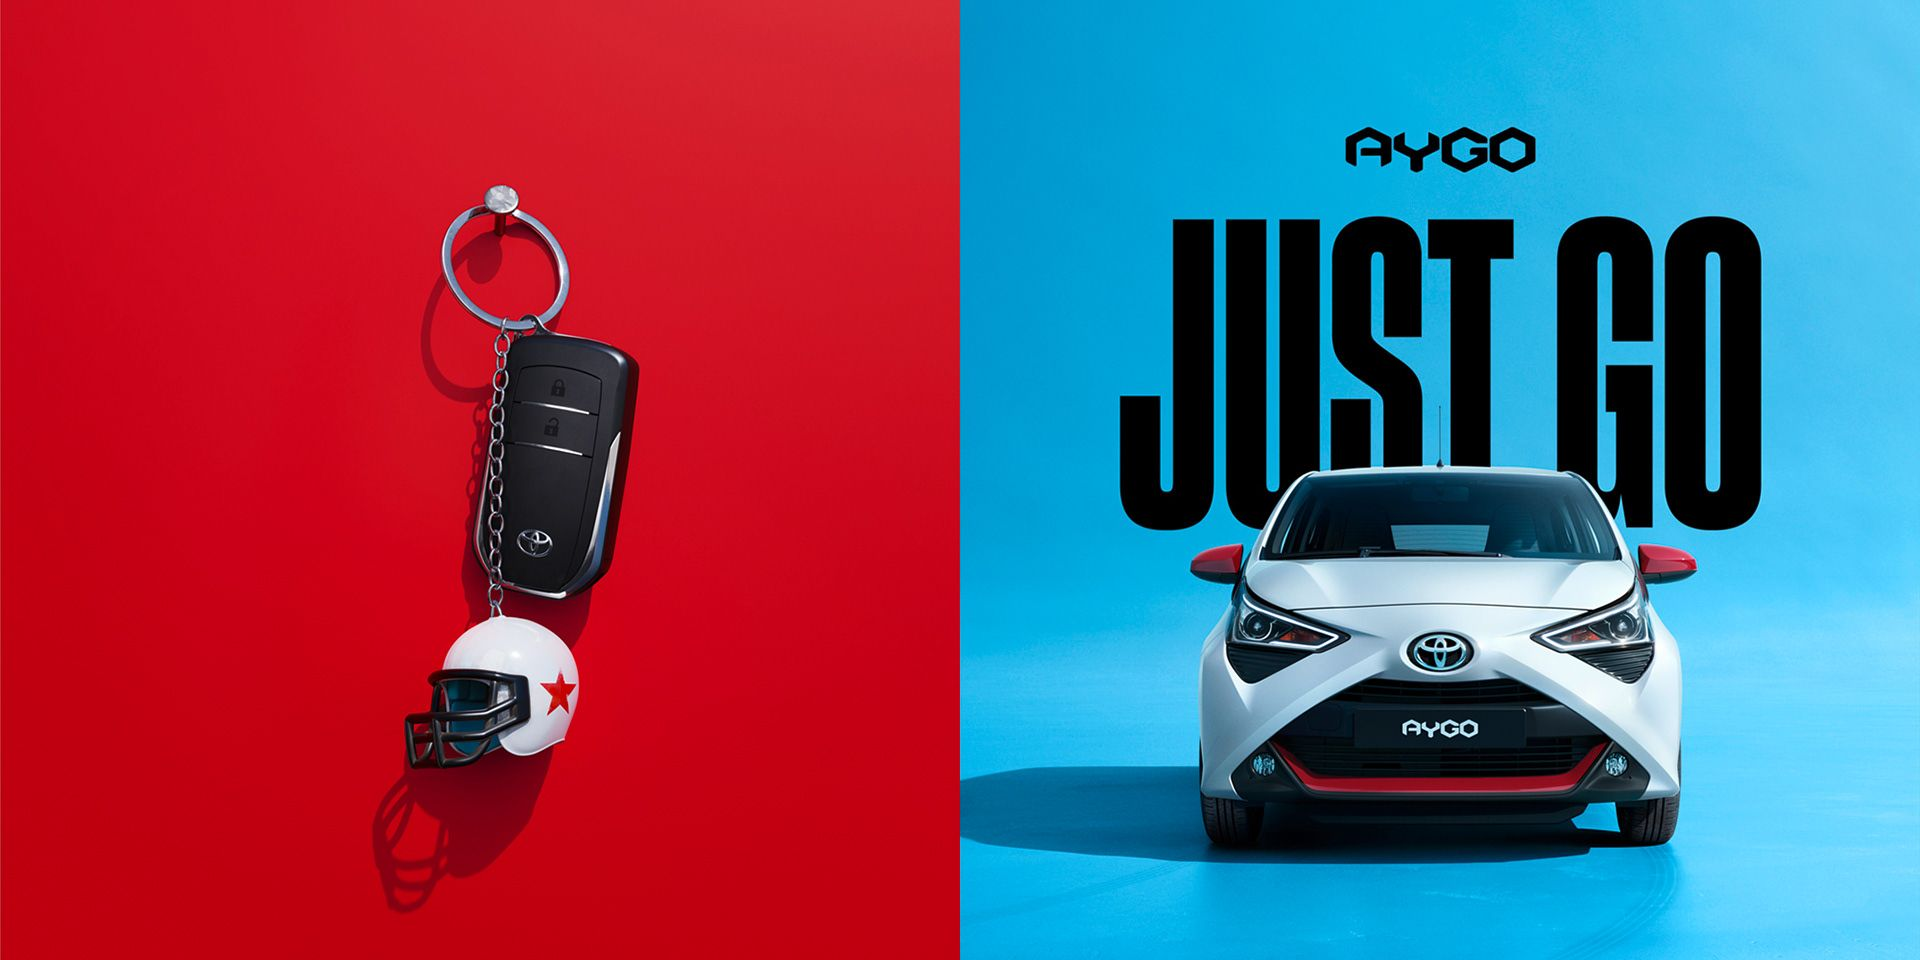 Toyota Aygo With Rick Guest On Behance In 2020 Toyota Aygo Toyota Car Advertising Design